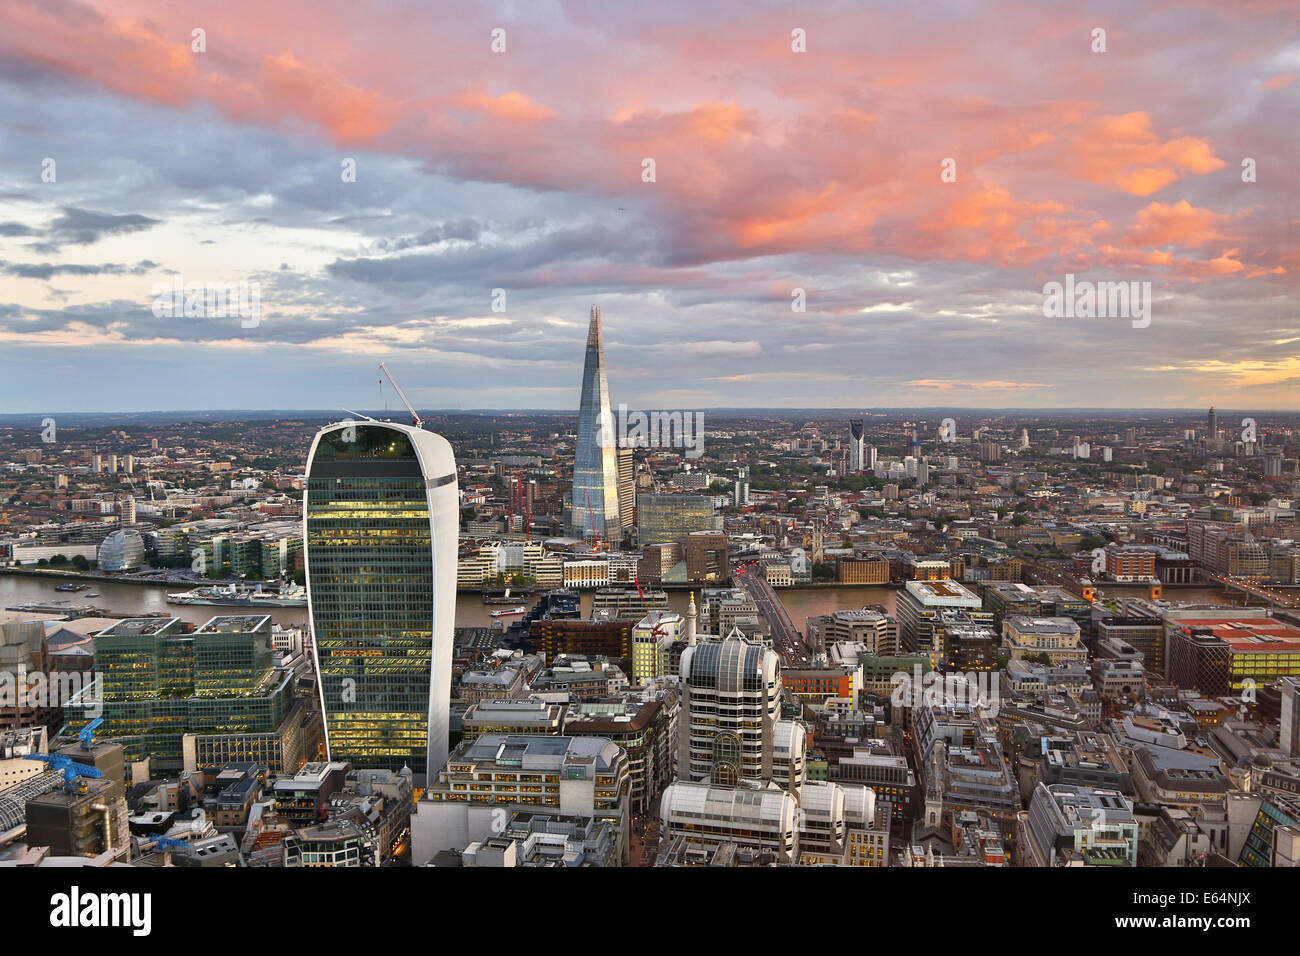 General view of buildings of the city skyline at dusk in London, England - Stock Image